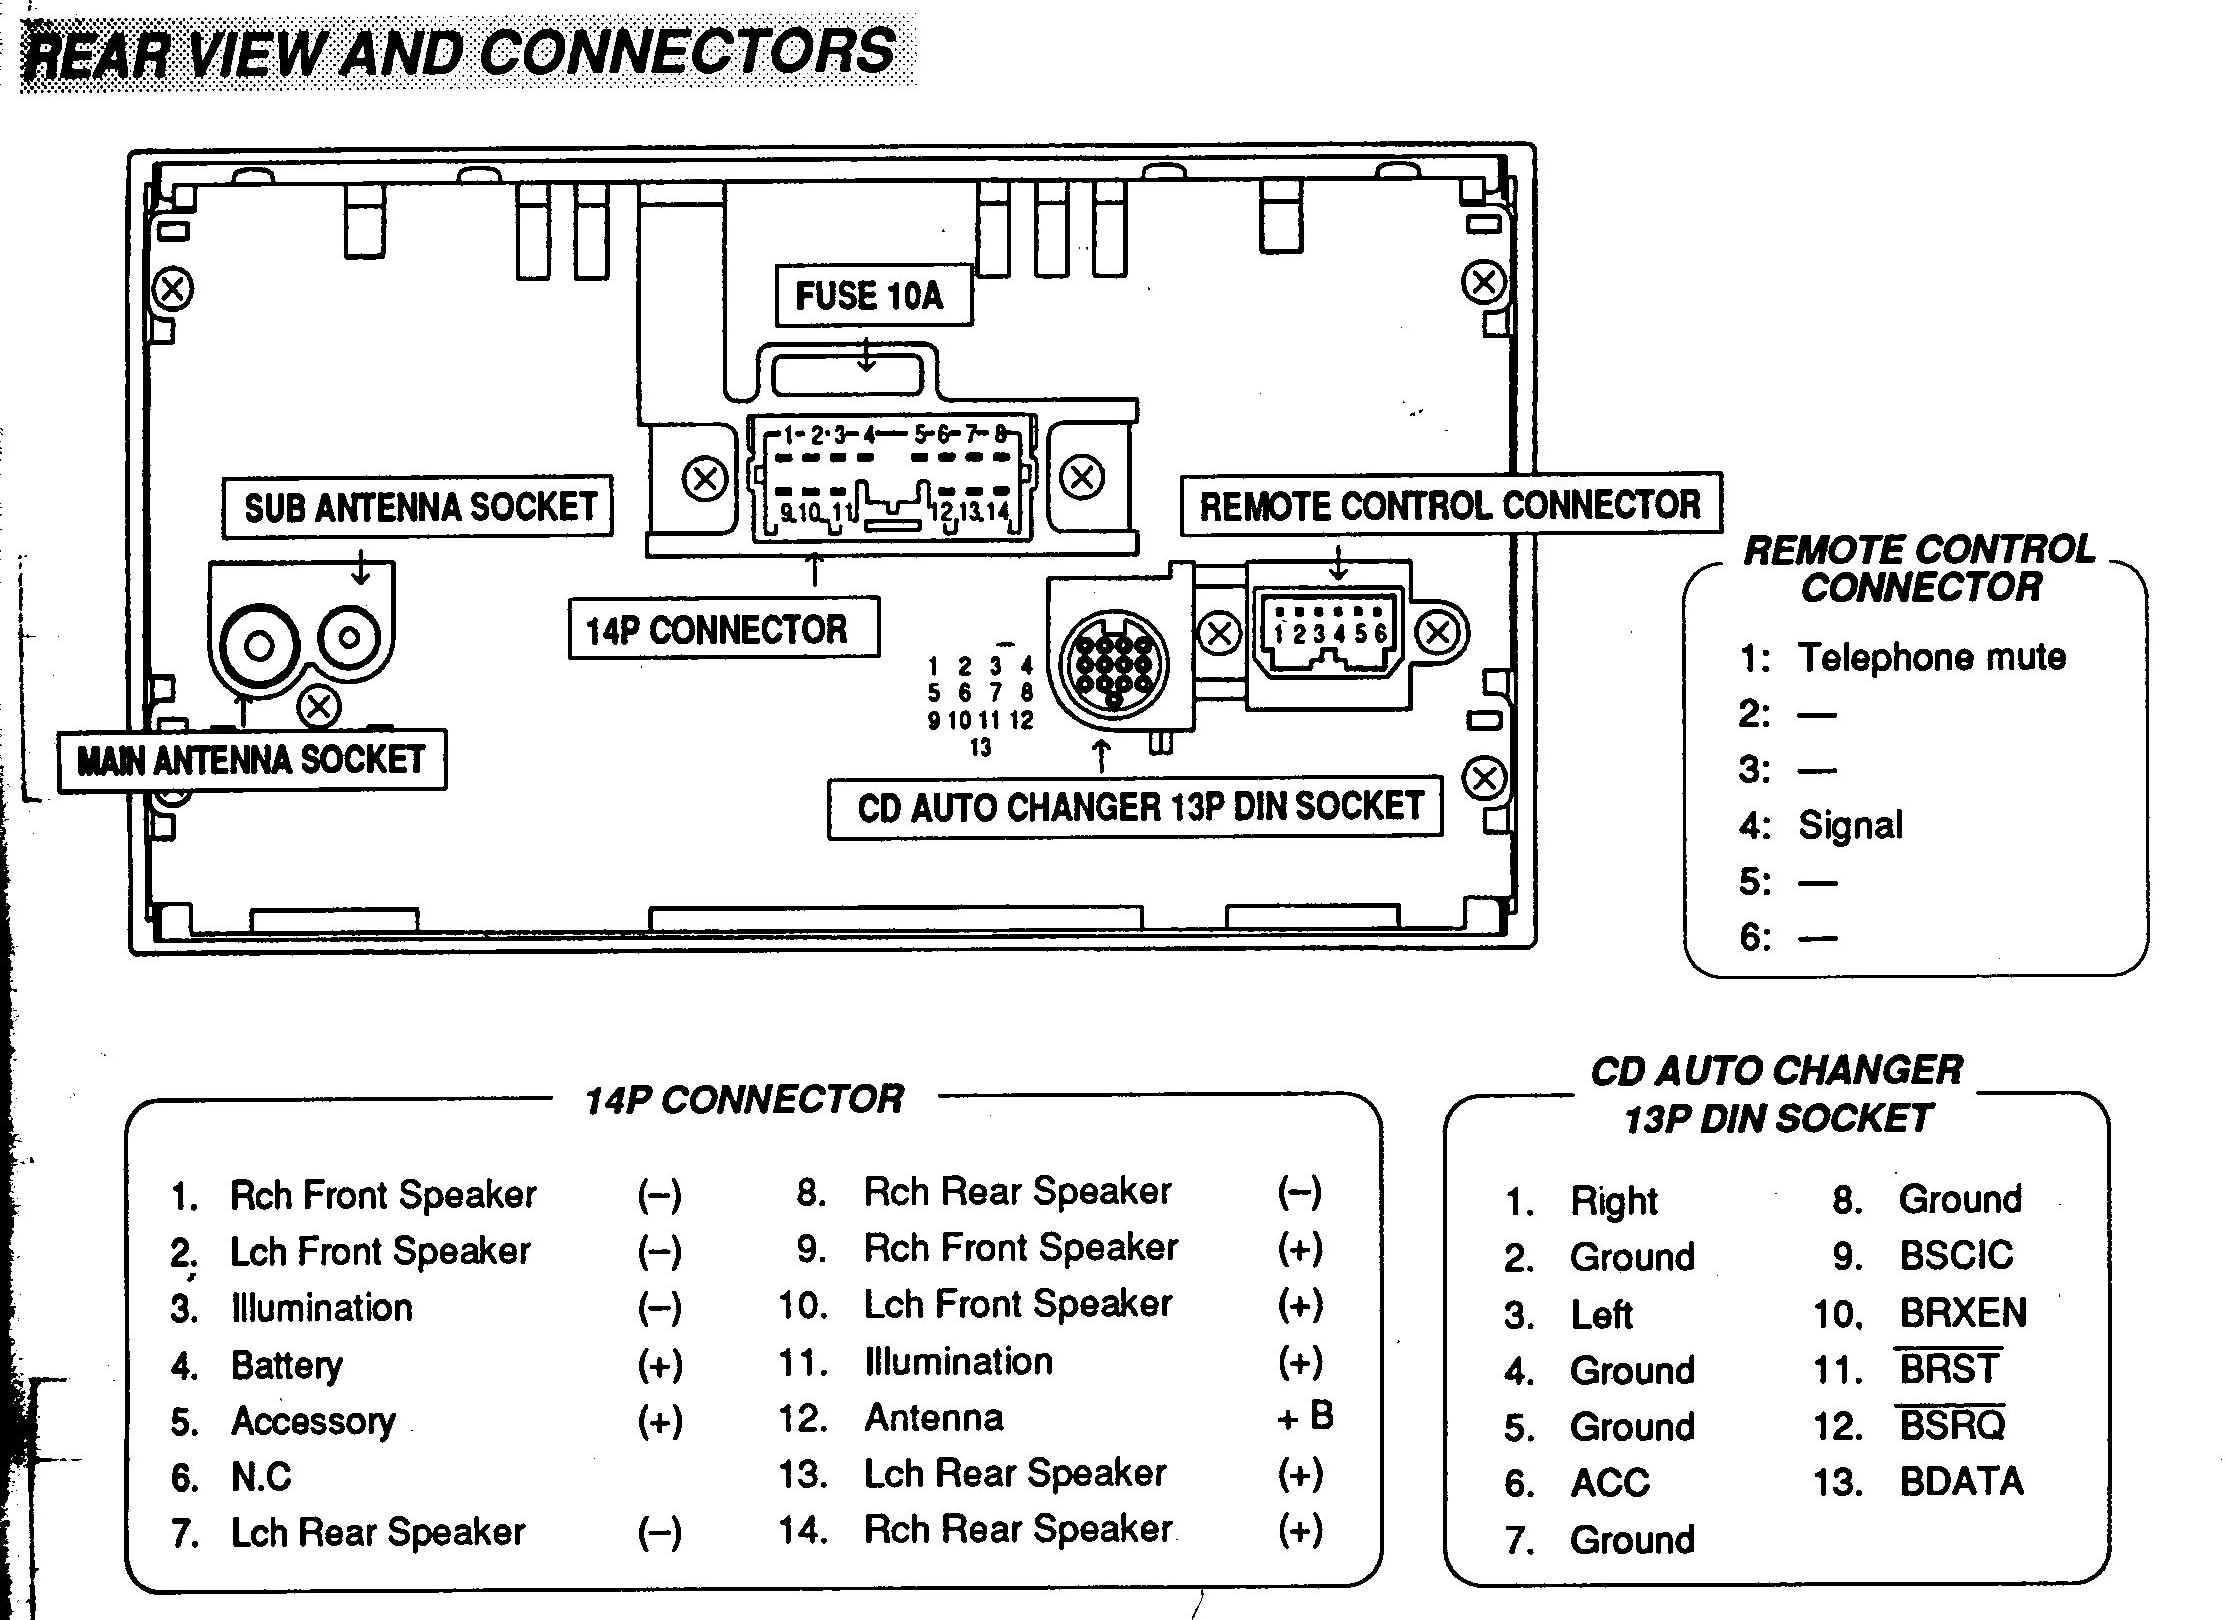 Amplifier Wiring Diagram Beautiful fortable Cinemate Bose Wiring Diagram Ideas Electrical and